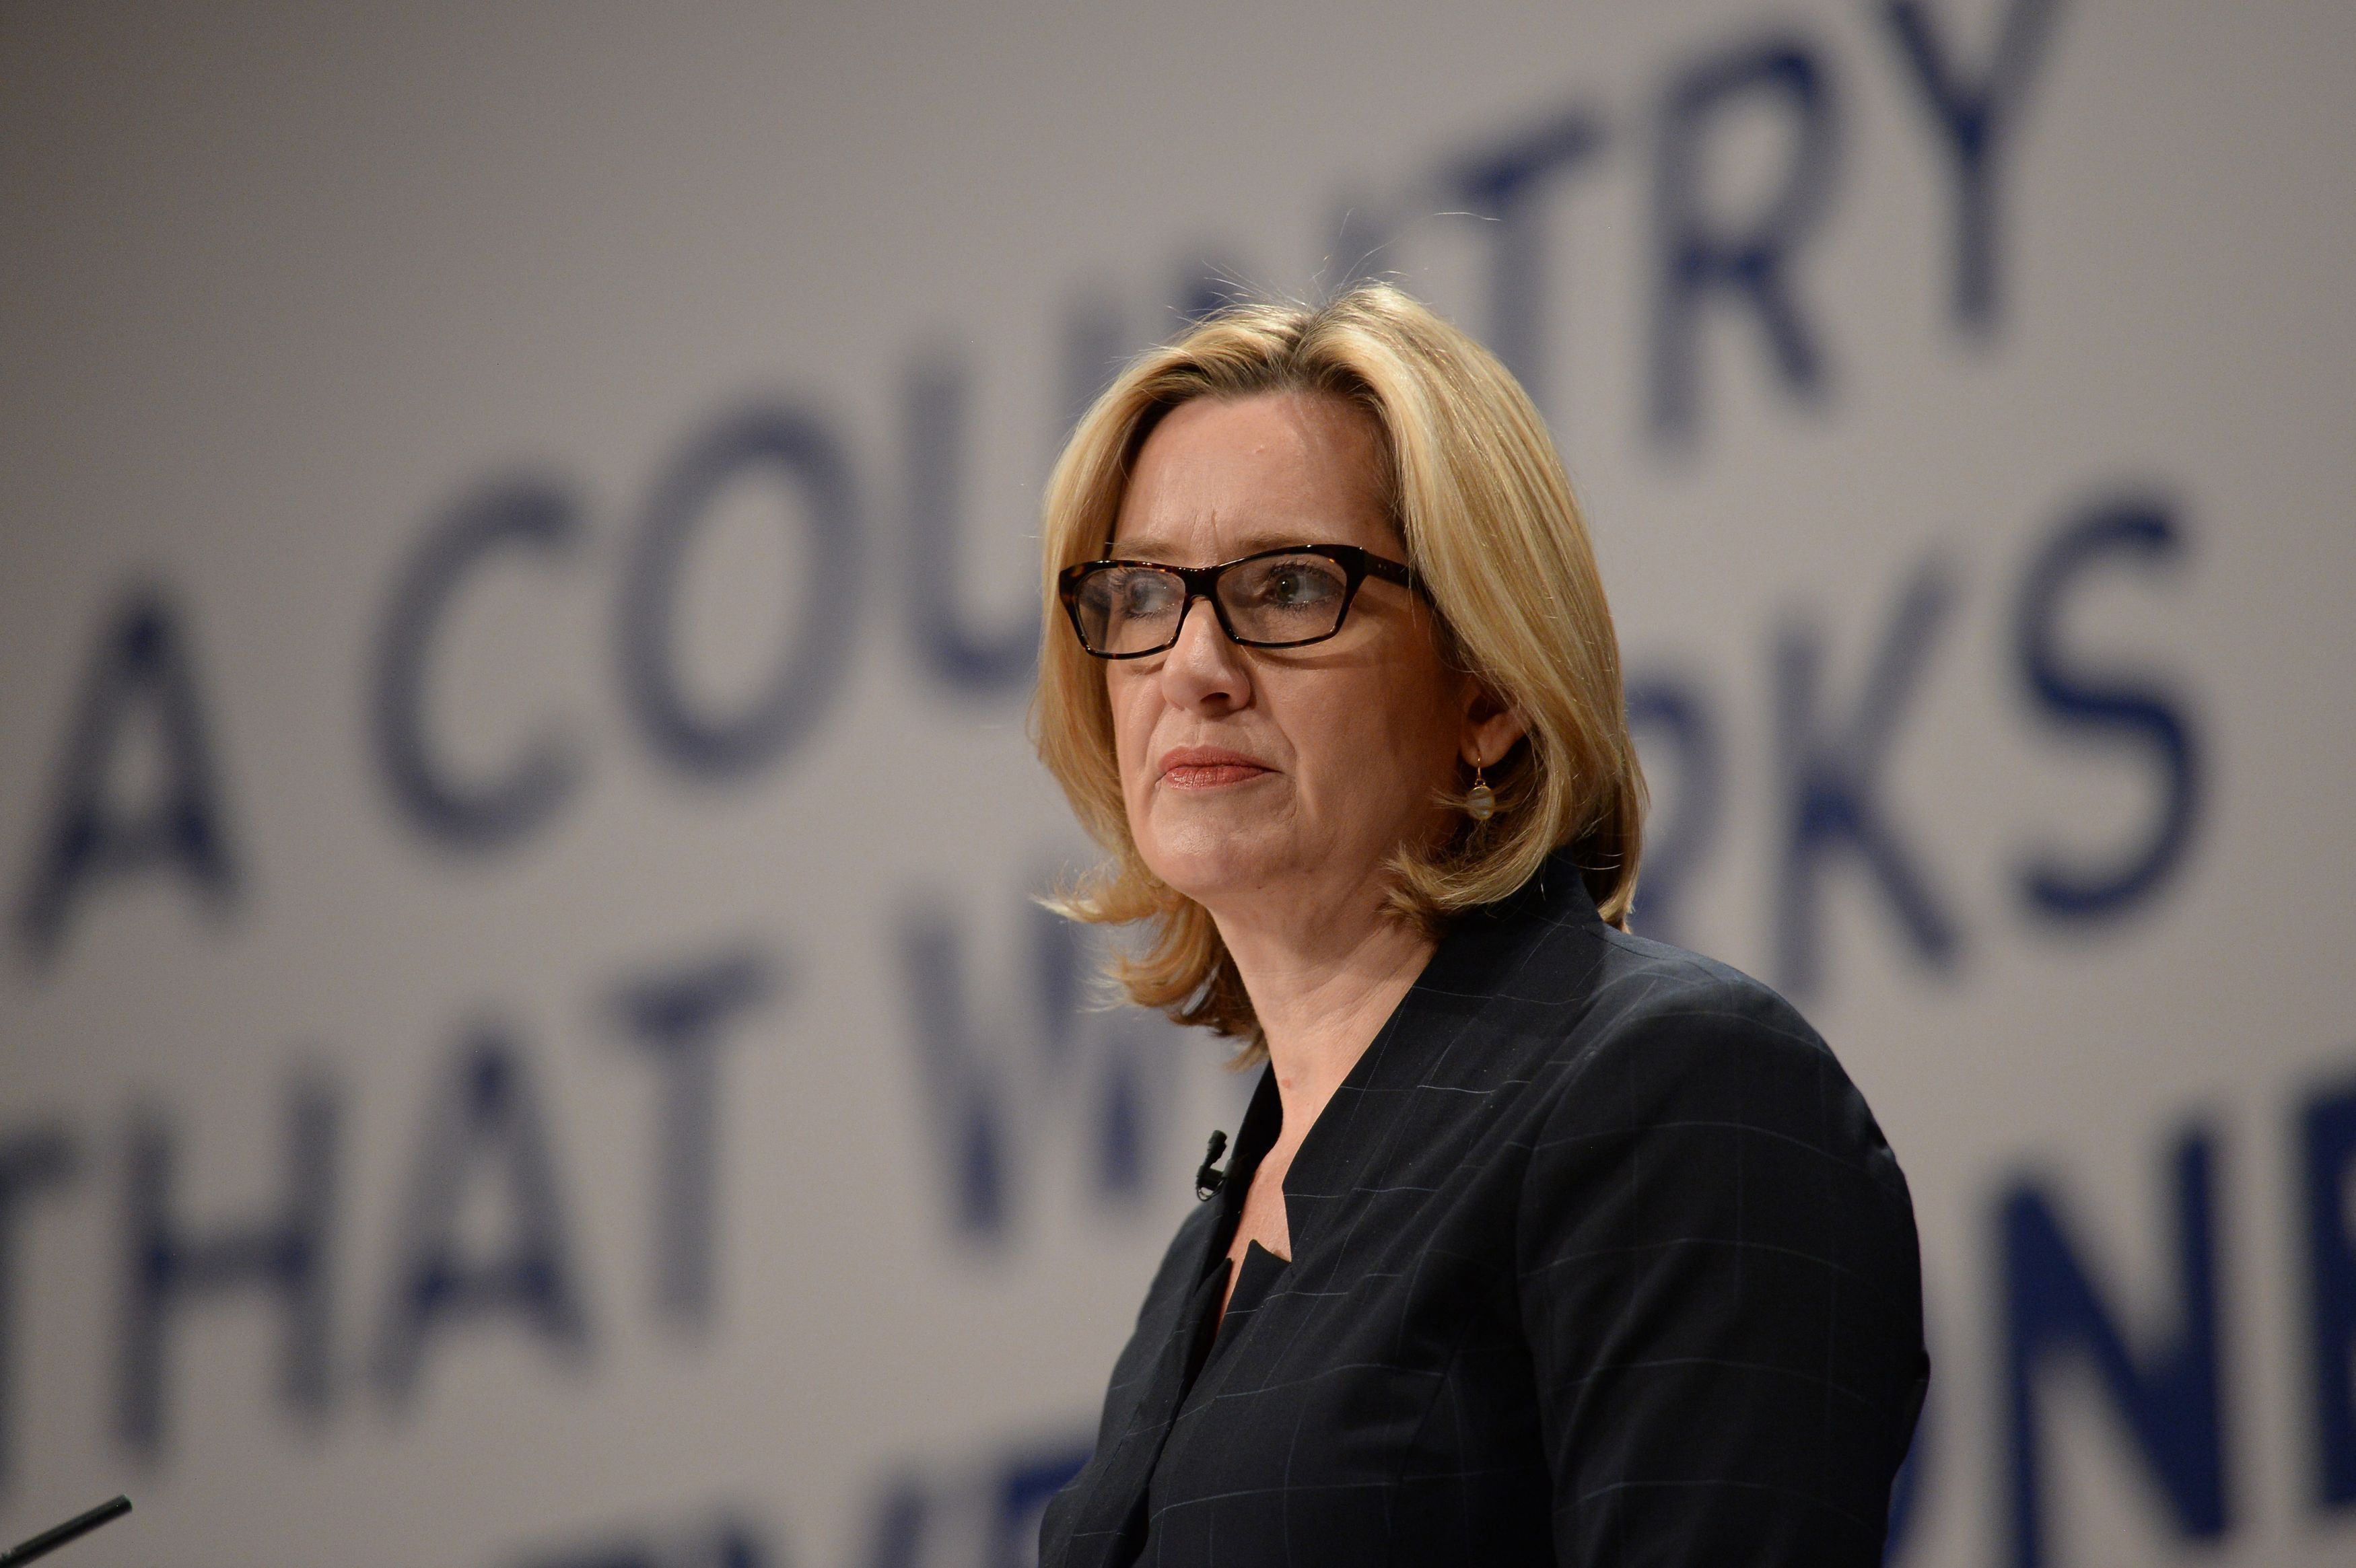 Home Secretary Amber Rudd's international student policy has been criticised by academics and